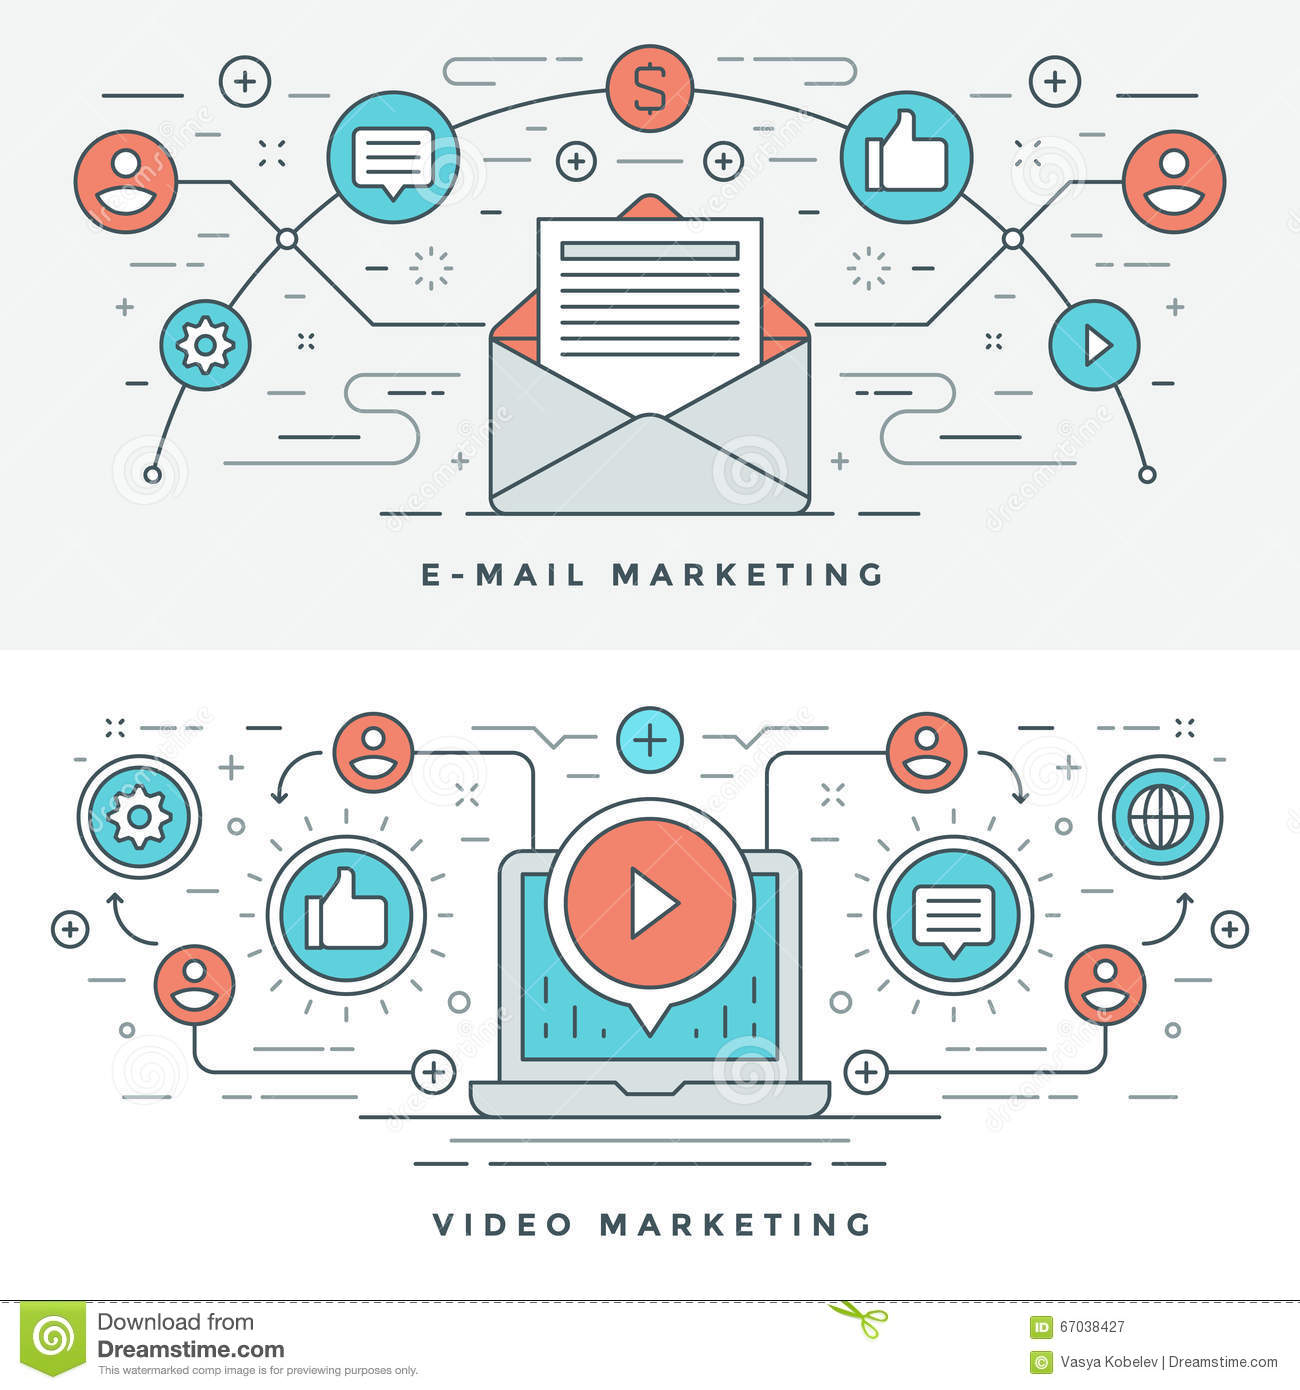 Vlakke lijn E-mail en Video Marketing Concepten Vectorillustratie Moderne dunne lineaire slag vectorpictogrammen